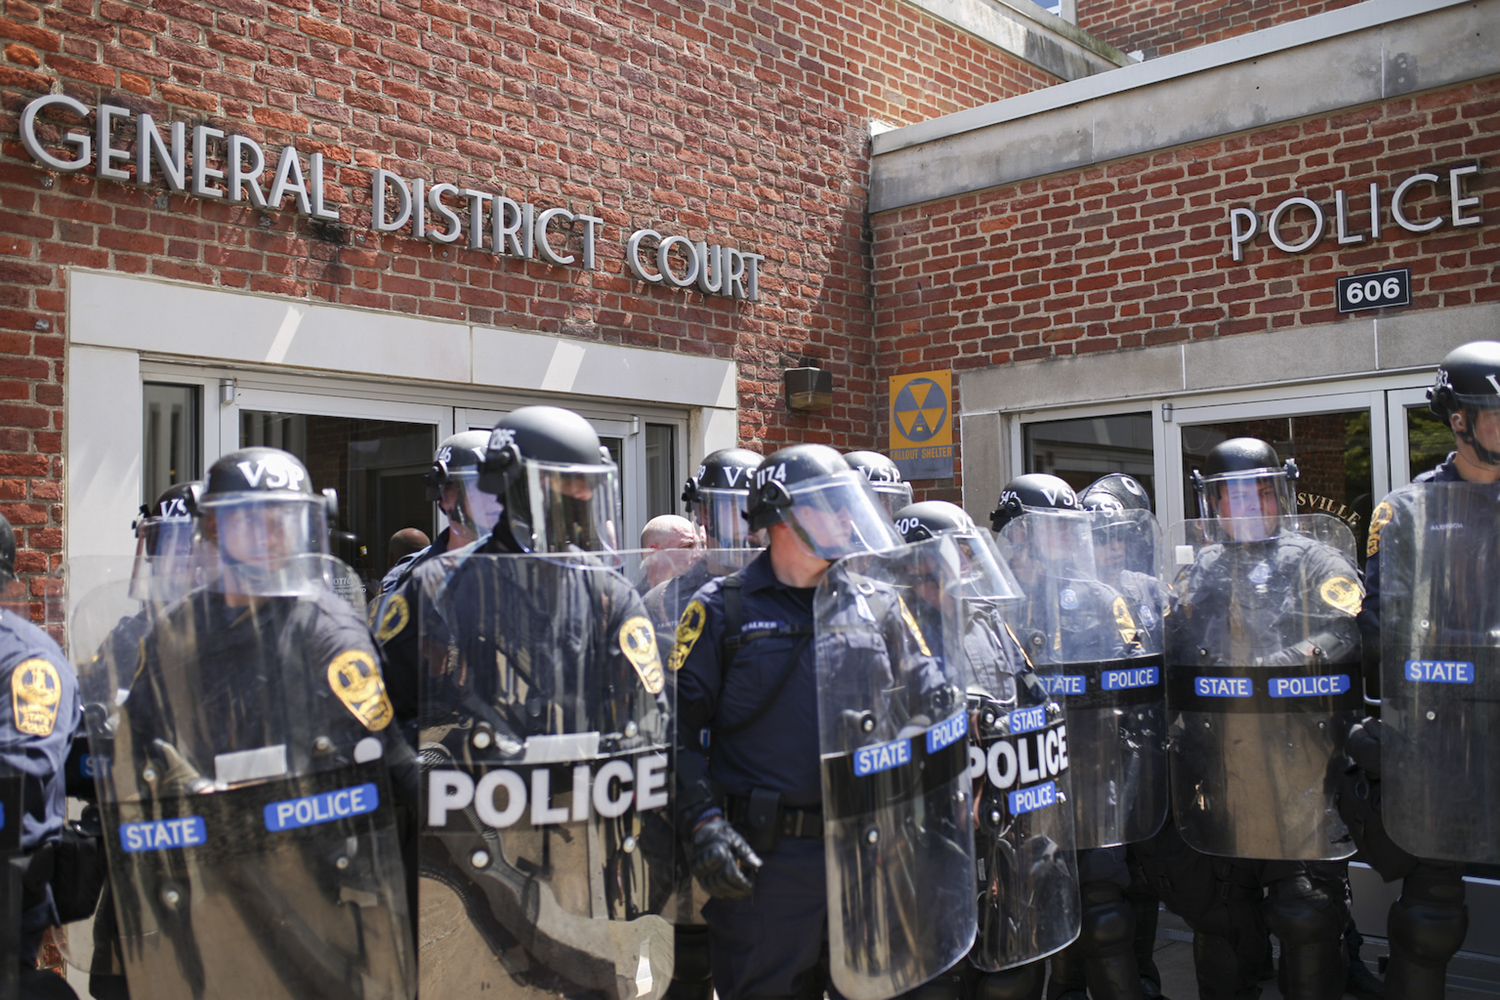 Virginia State Police surround the Charlottesville General District Court and police station when a press conference was scheduled by white supremacist Jason Kessler in Charlottesville, Va., on Sunday, August 13, 2017. [Scott P. Yates for The Wall Street Journal]